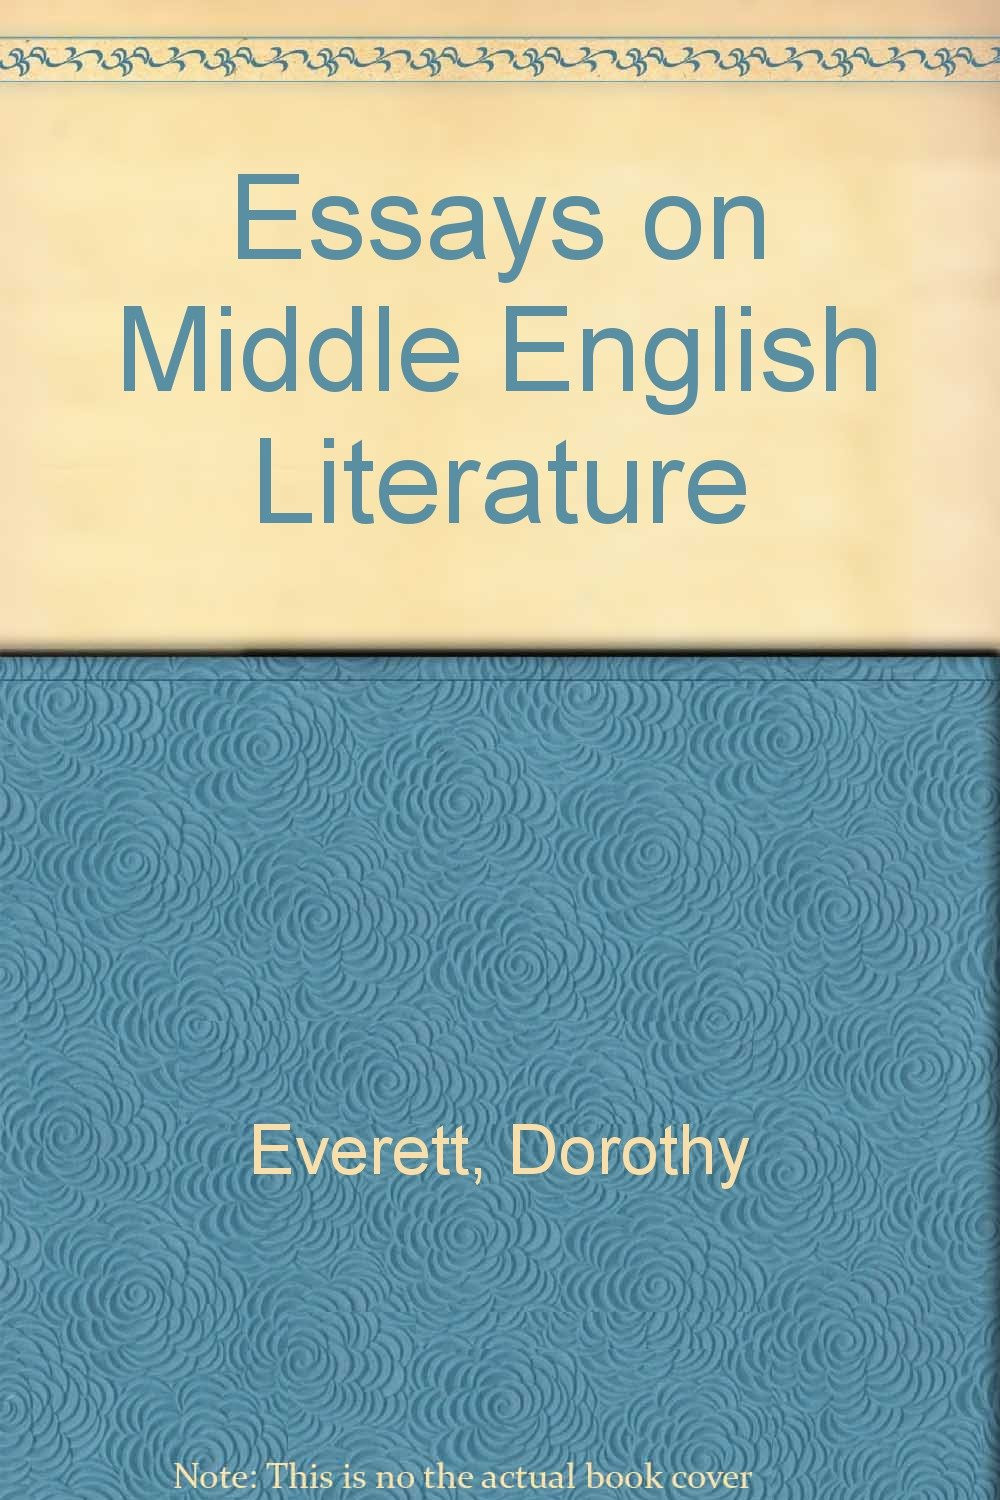 essays on middle english literature dorothy everett   follow the author